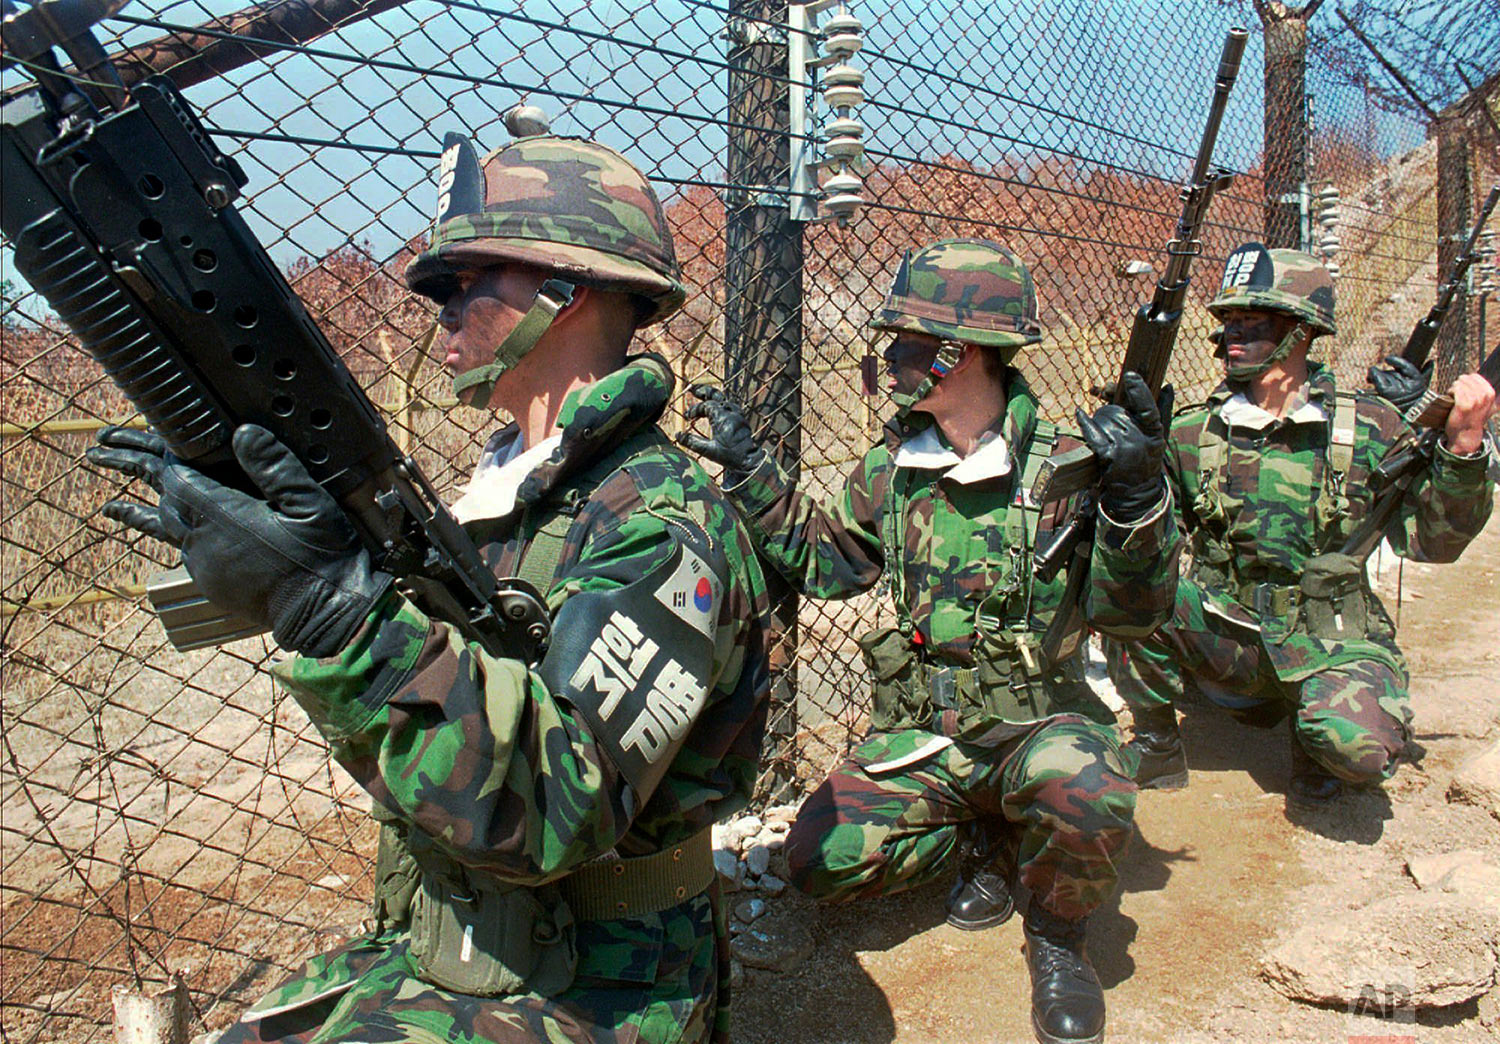 South Korean soldiers take their position along the wire fence in the Demilitarized Zone separating the two Koreas near the truce village of Panmunjom on April 8, 1996, the day after armed North Korean troops marched into the DMZ. (AP Photo/Ahn Young-joon)